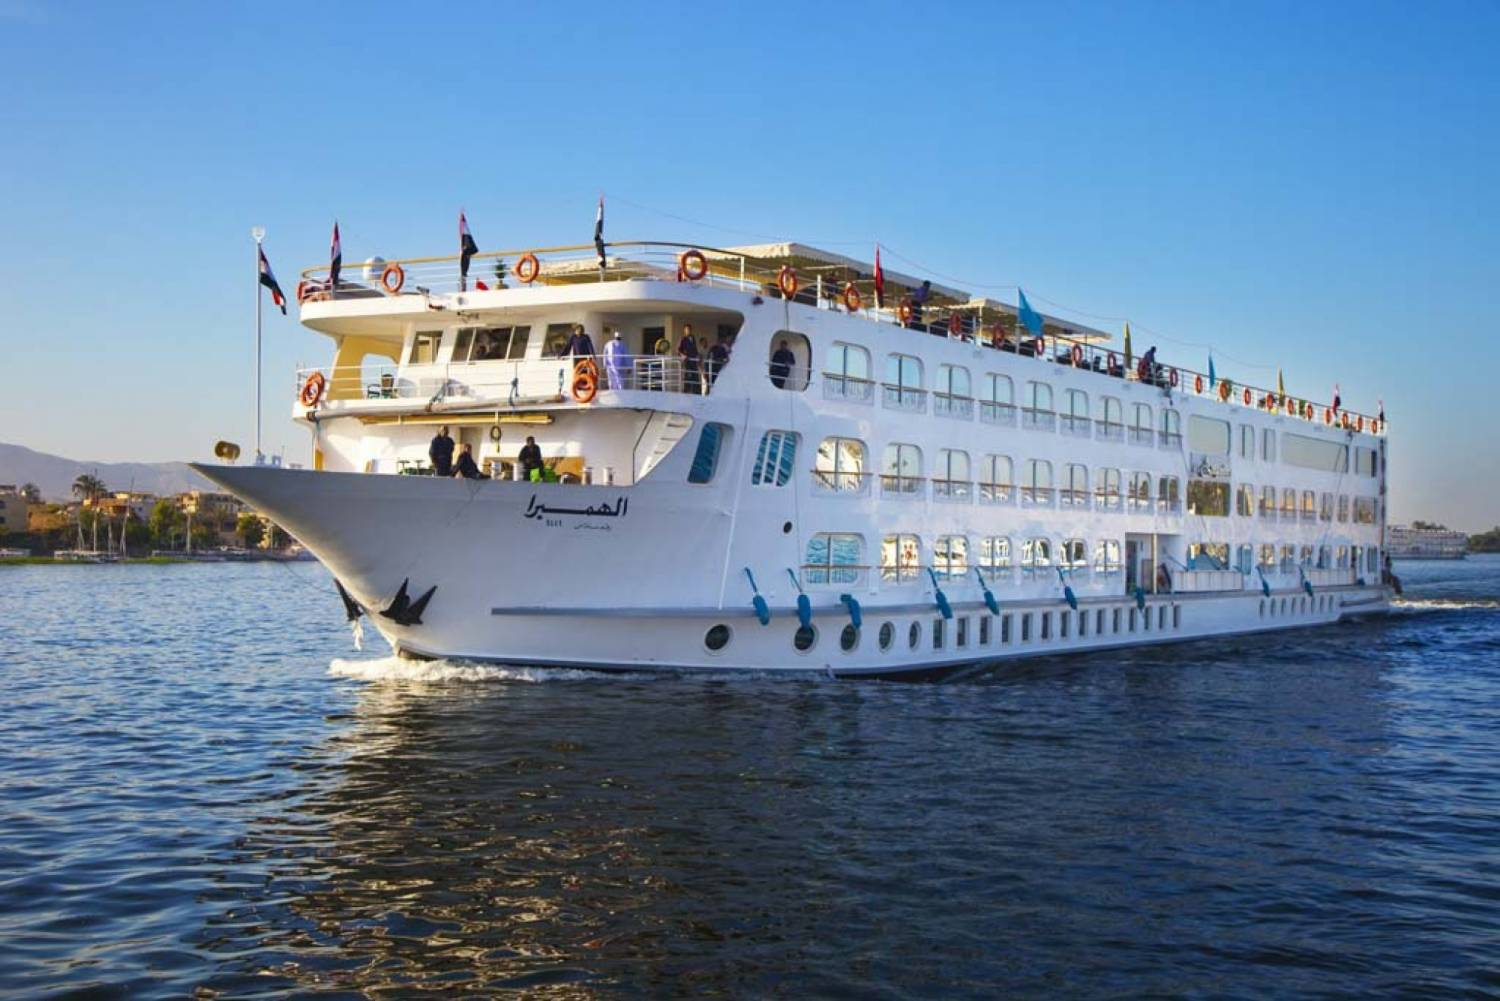 Egypt Cheap Nile Cruises Trips From Luxor To Aswan For Days - Cruises cheap